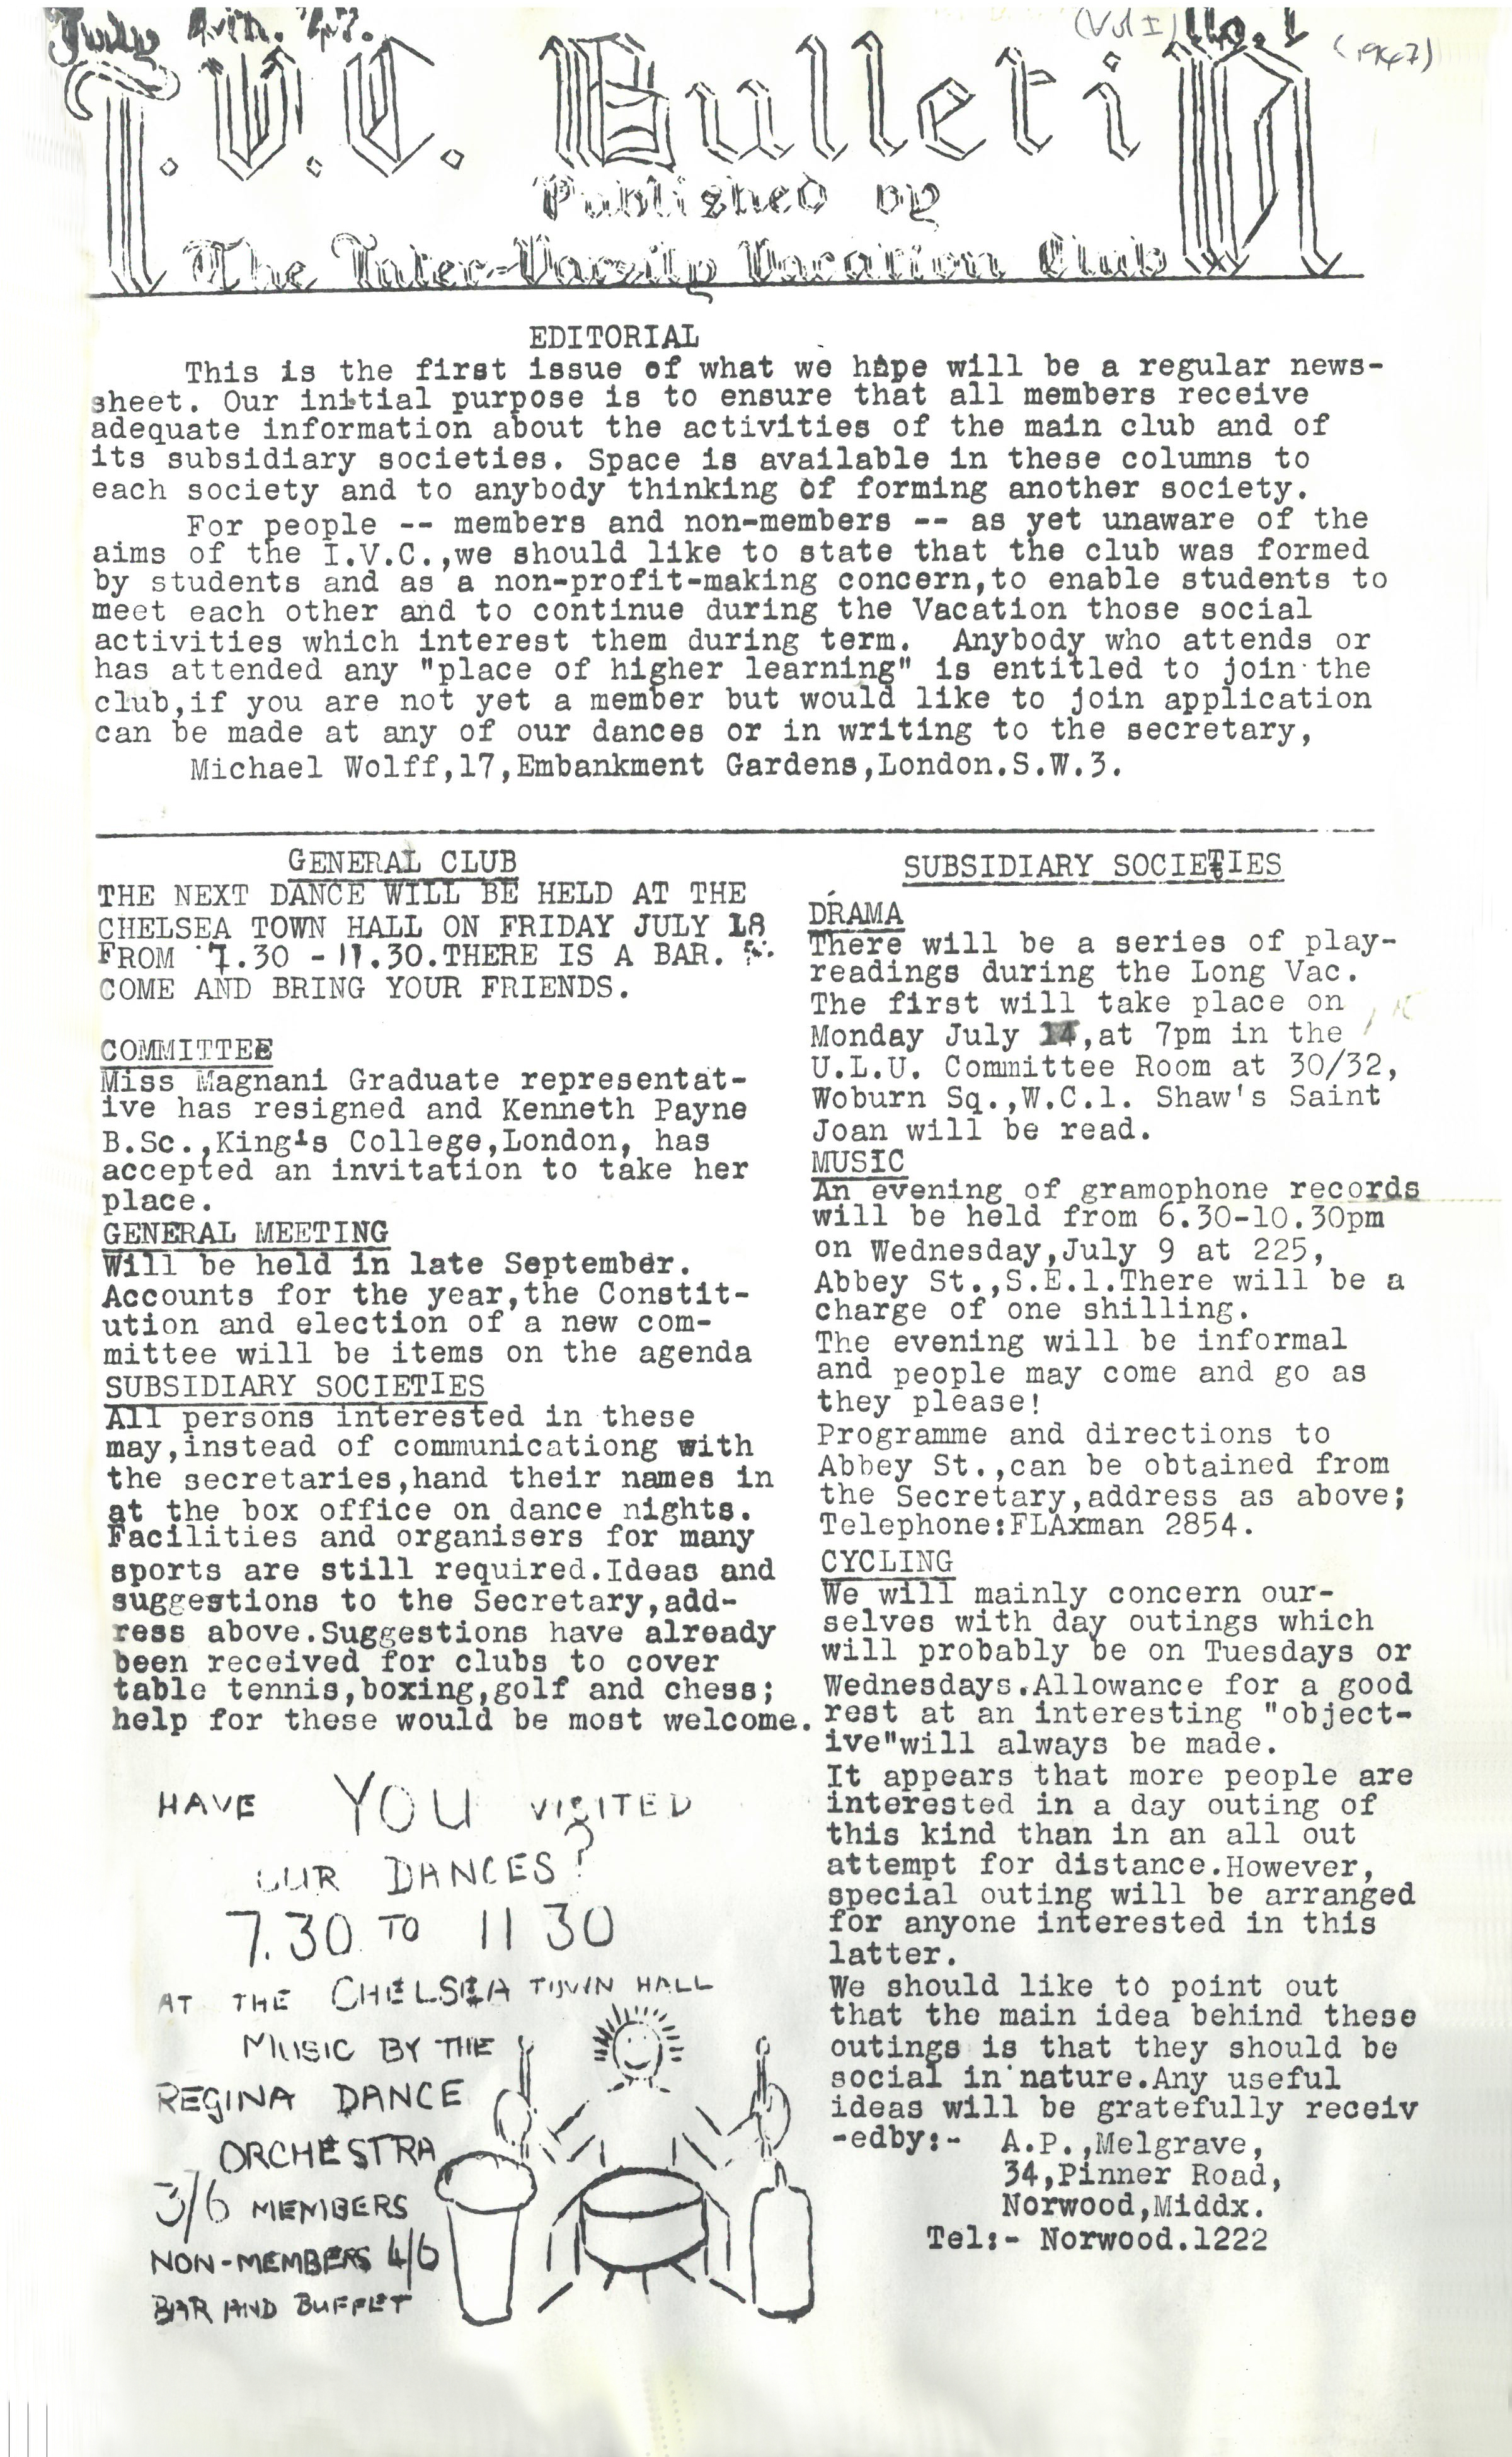 First IVC Bulletin - July 1947